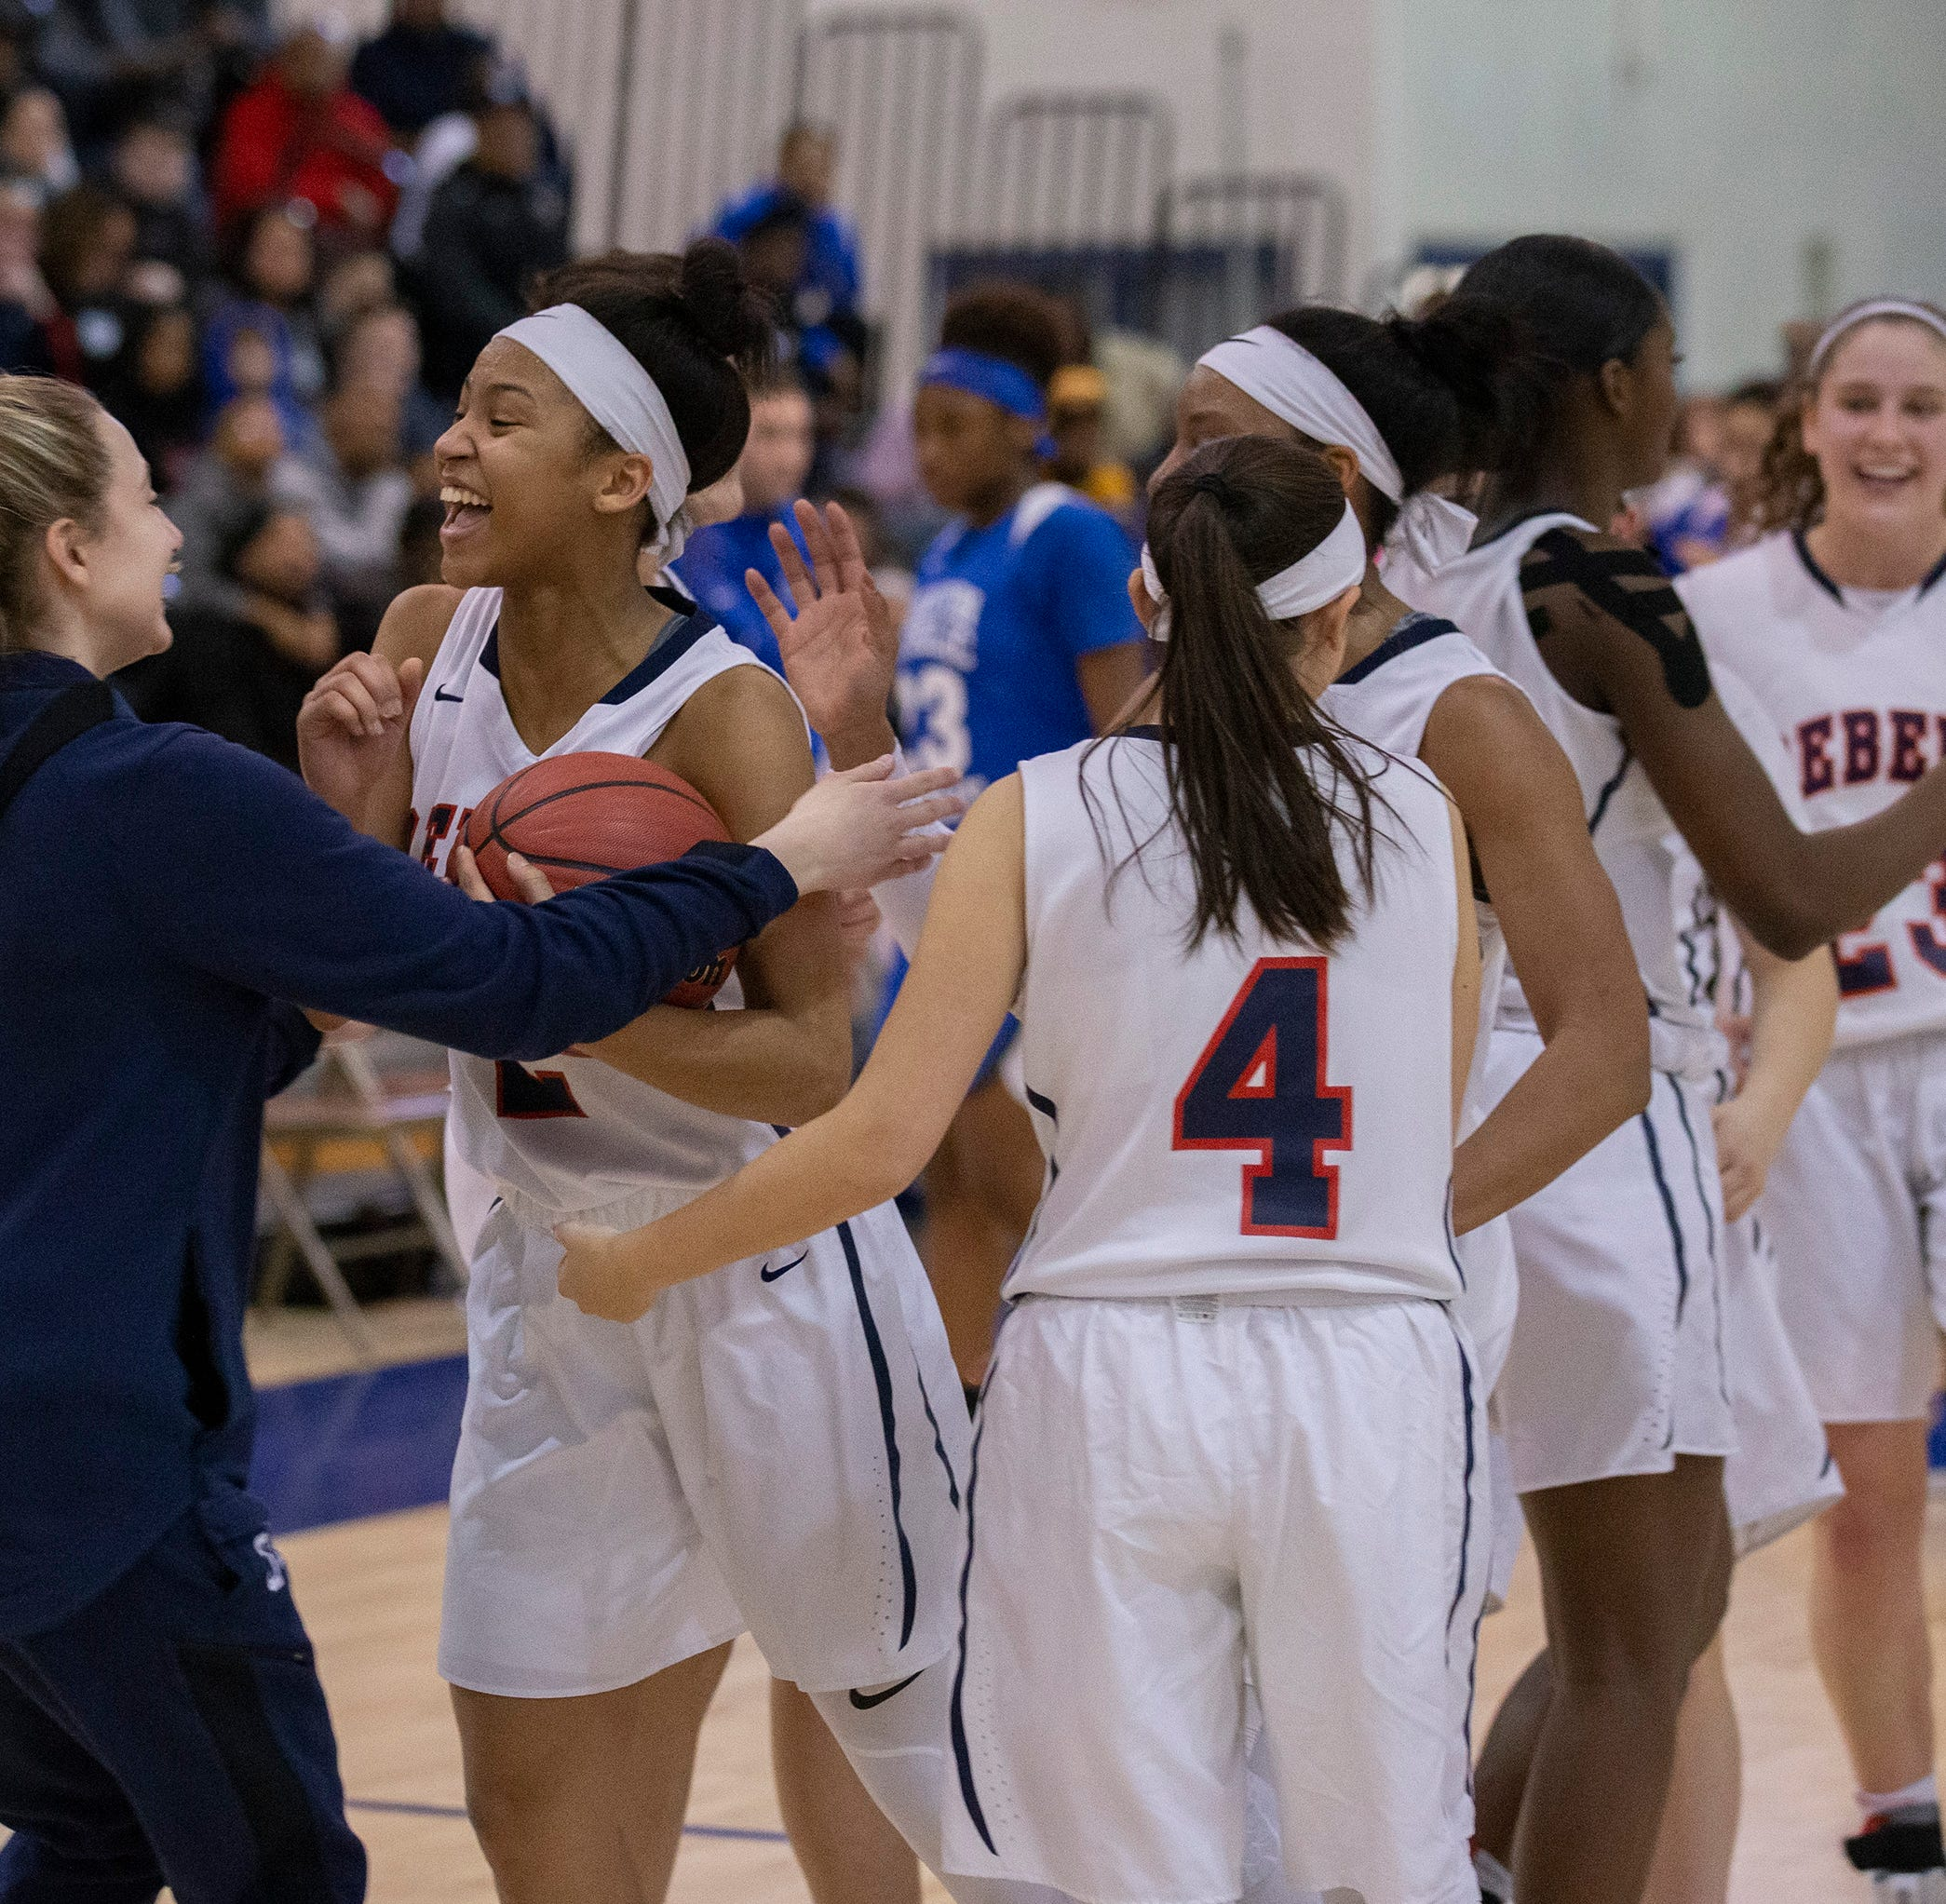 Saniah Caldwell's effort helps lift Saddle River Day to second state title in a row